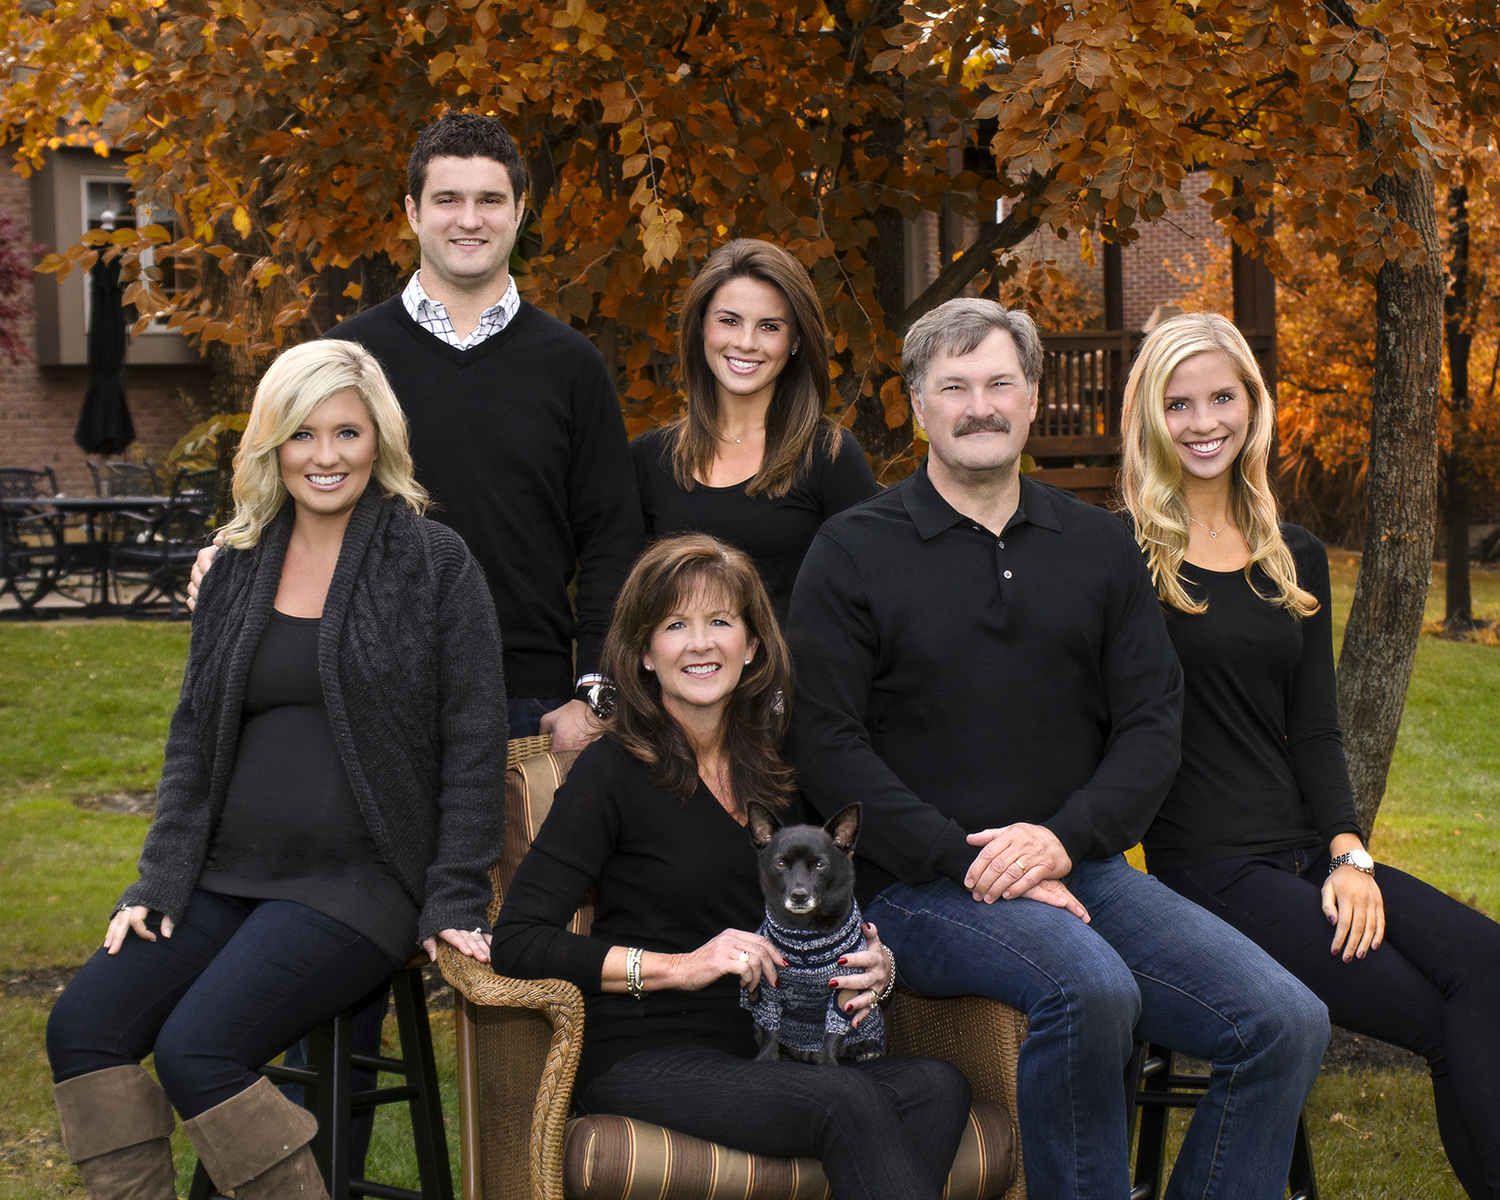 fall family home portrait in Centervill Ohio by Dan Cleary of Cleary Creative Photography